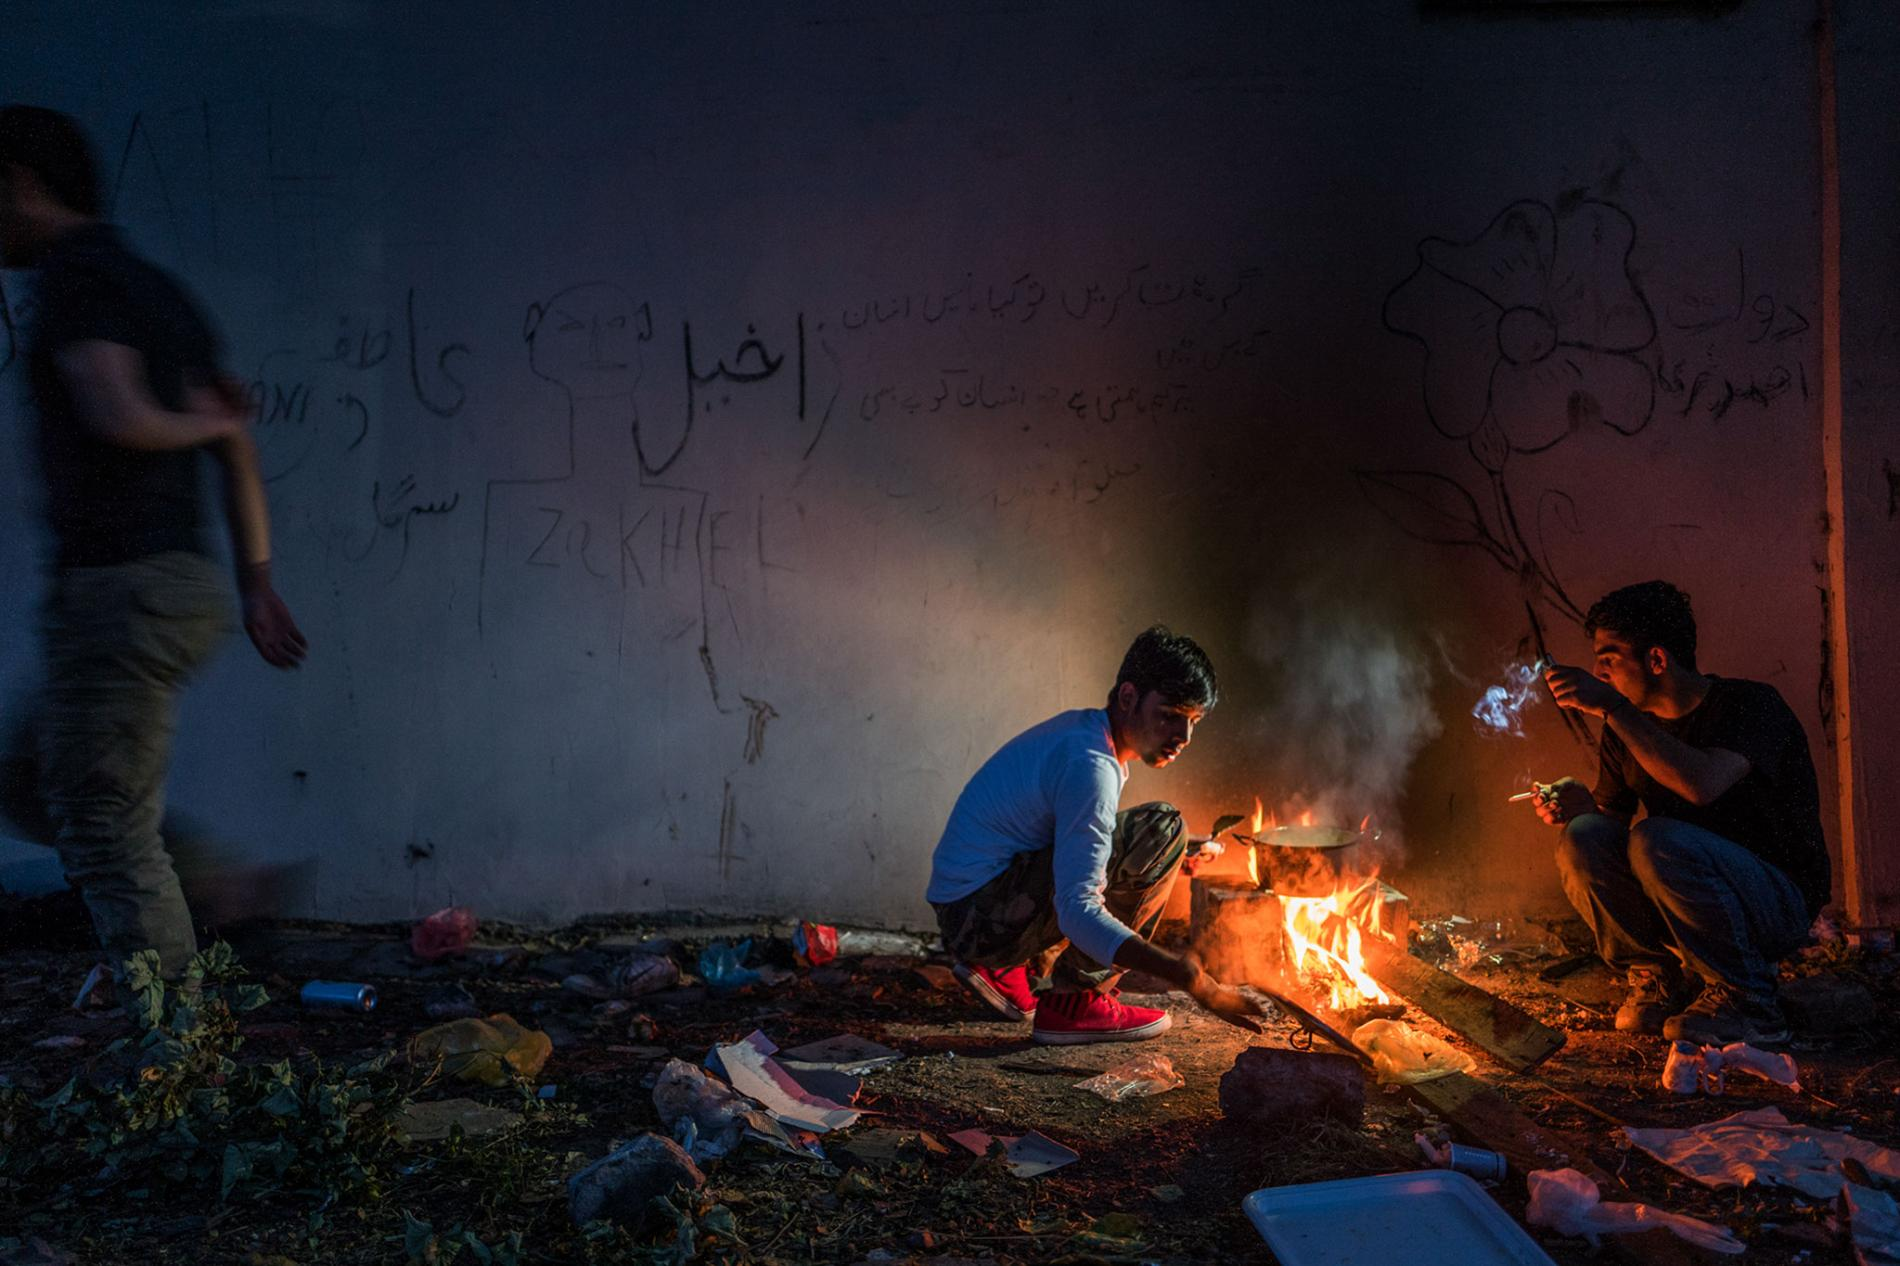 57 Pictures of the year - Natgeo - Tinhte.vn 10.jpg